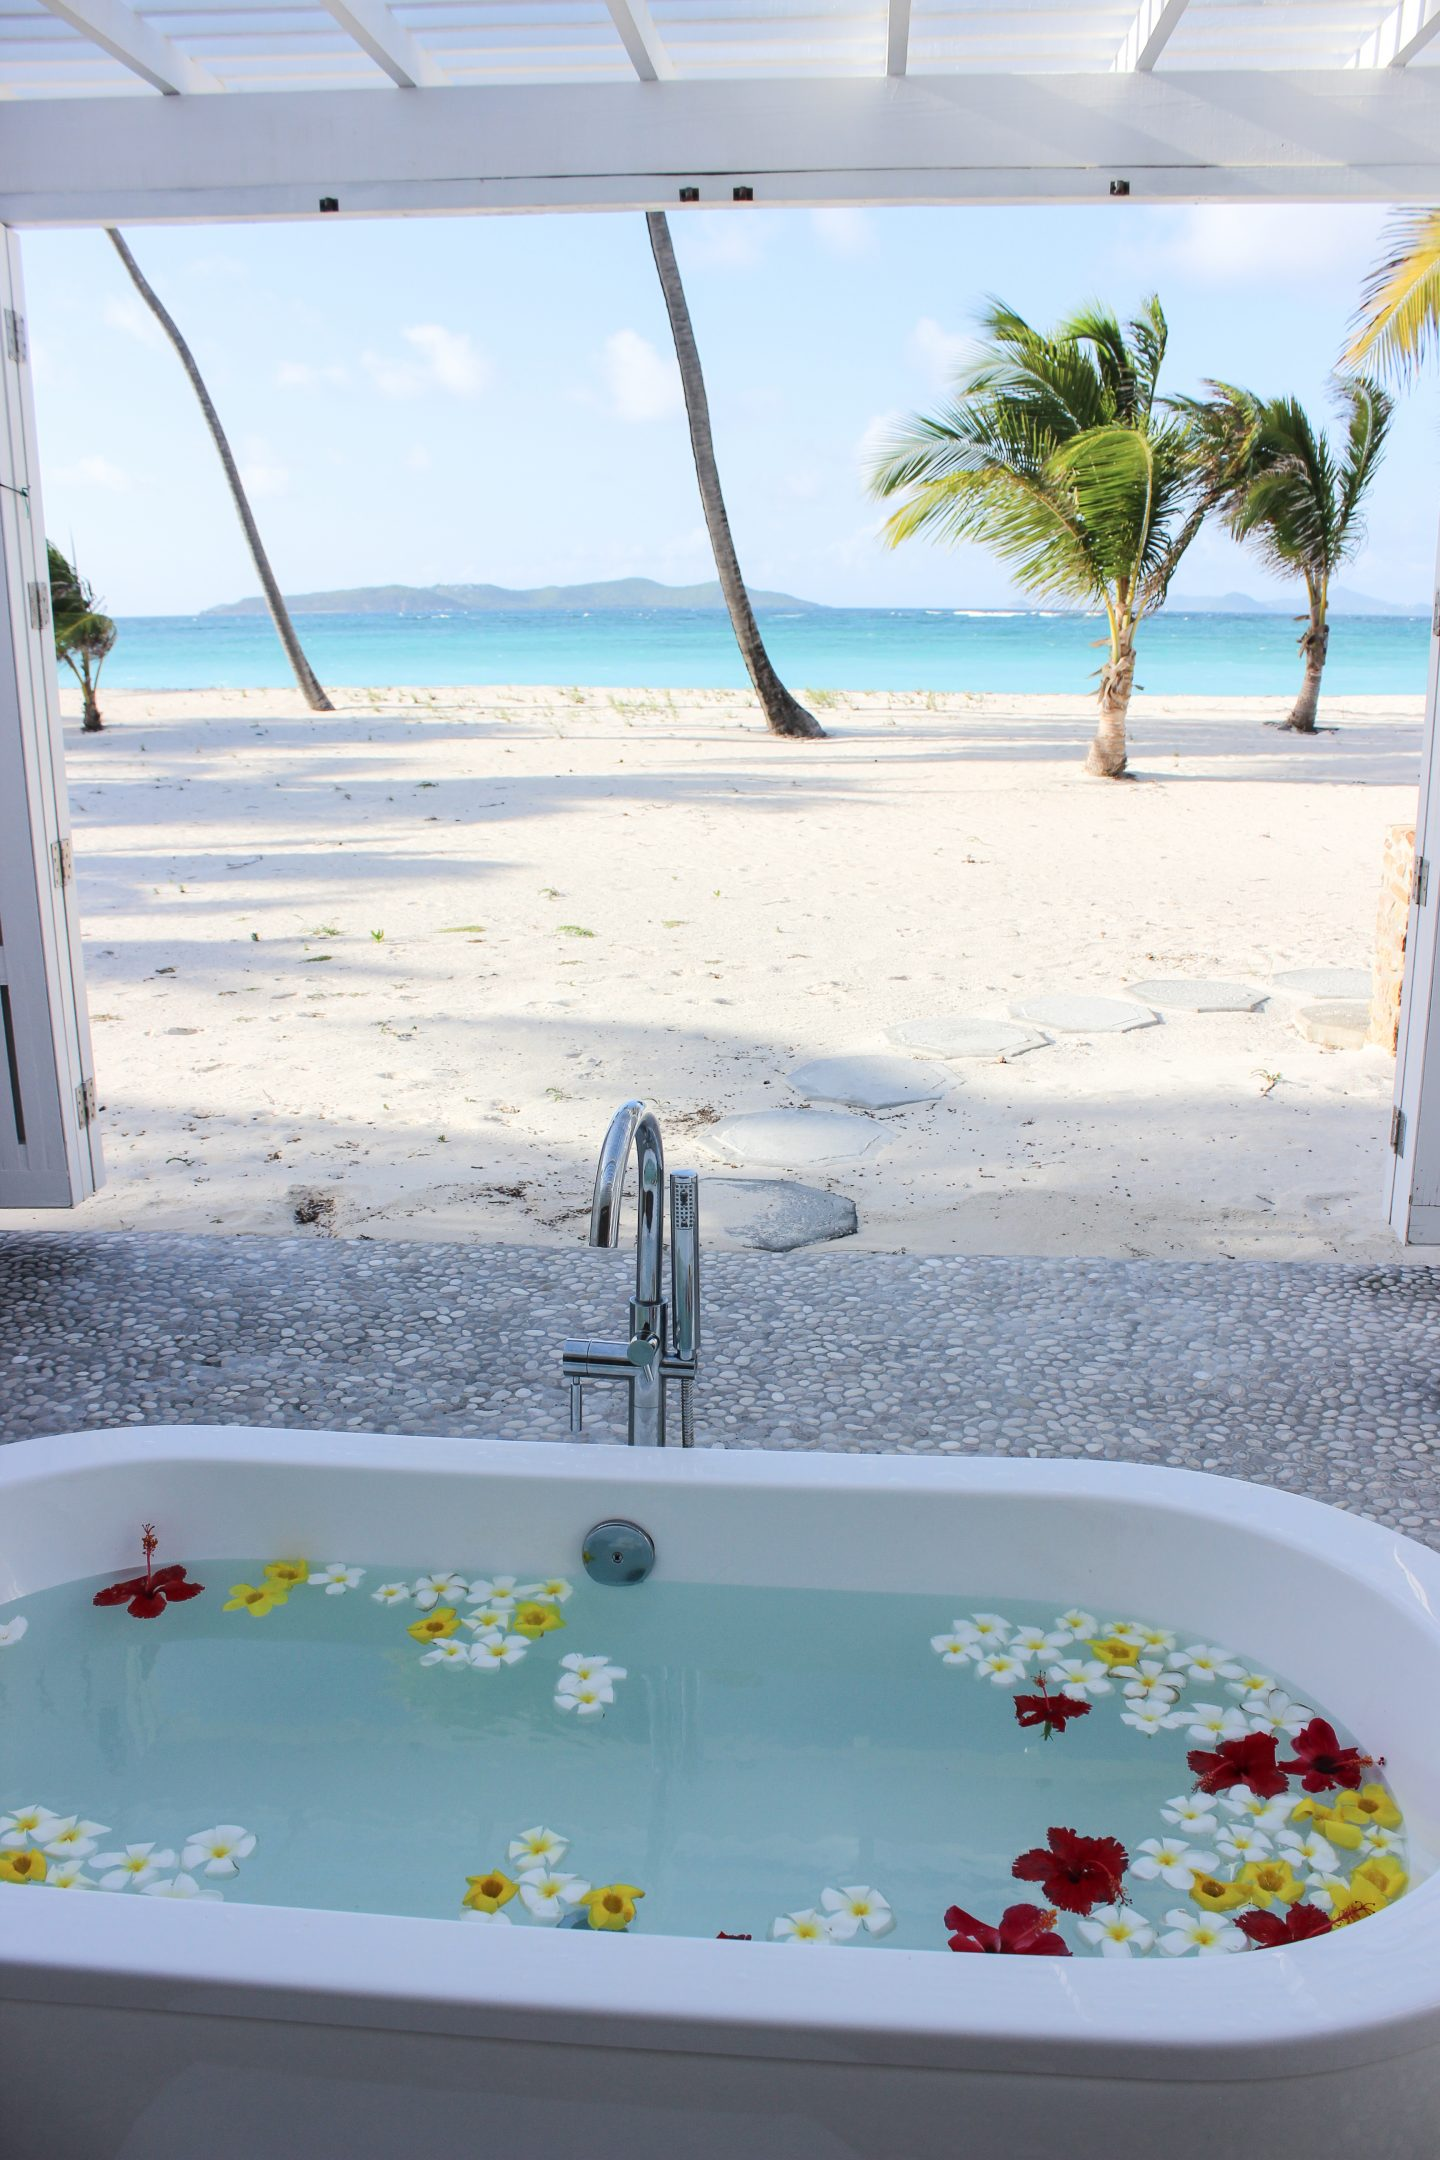 Clutch and carry on - UK Travel blogger - palm island resort, grenadines (338 of 361)